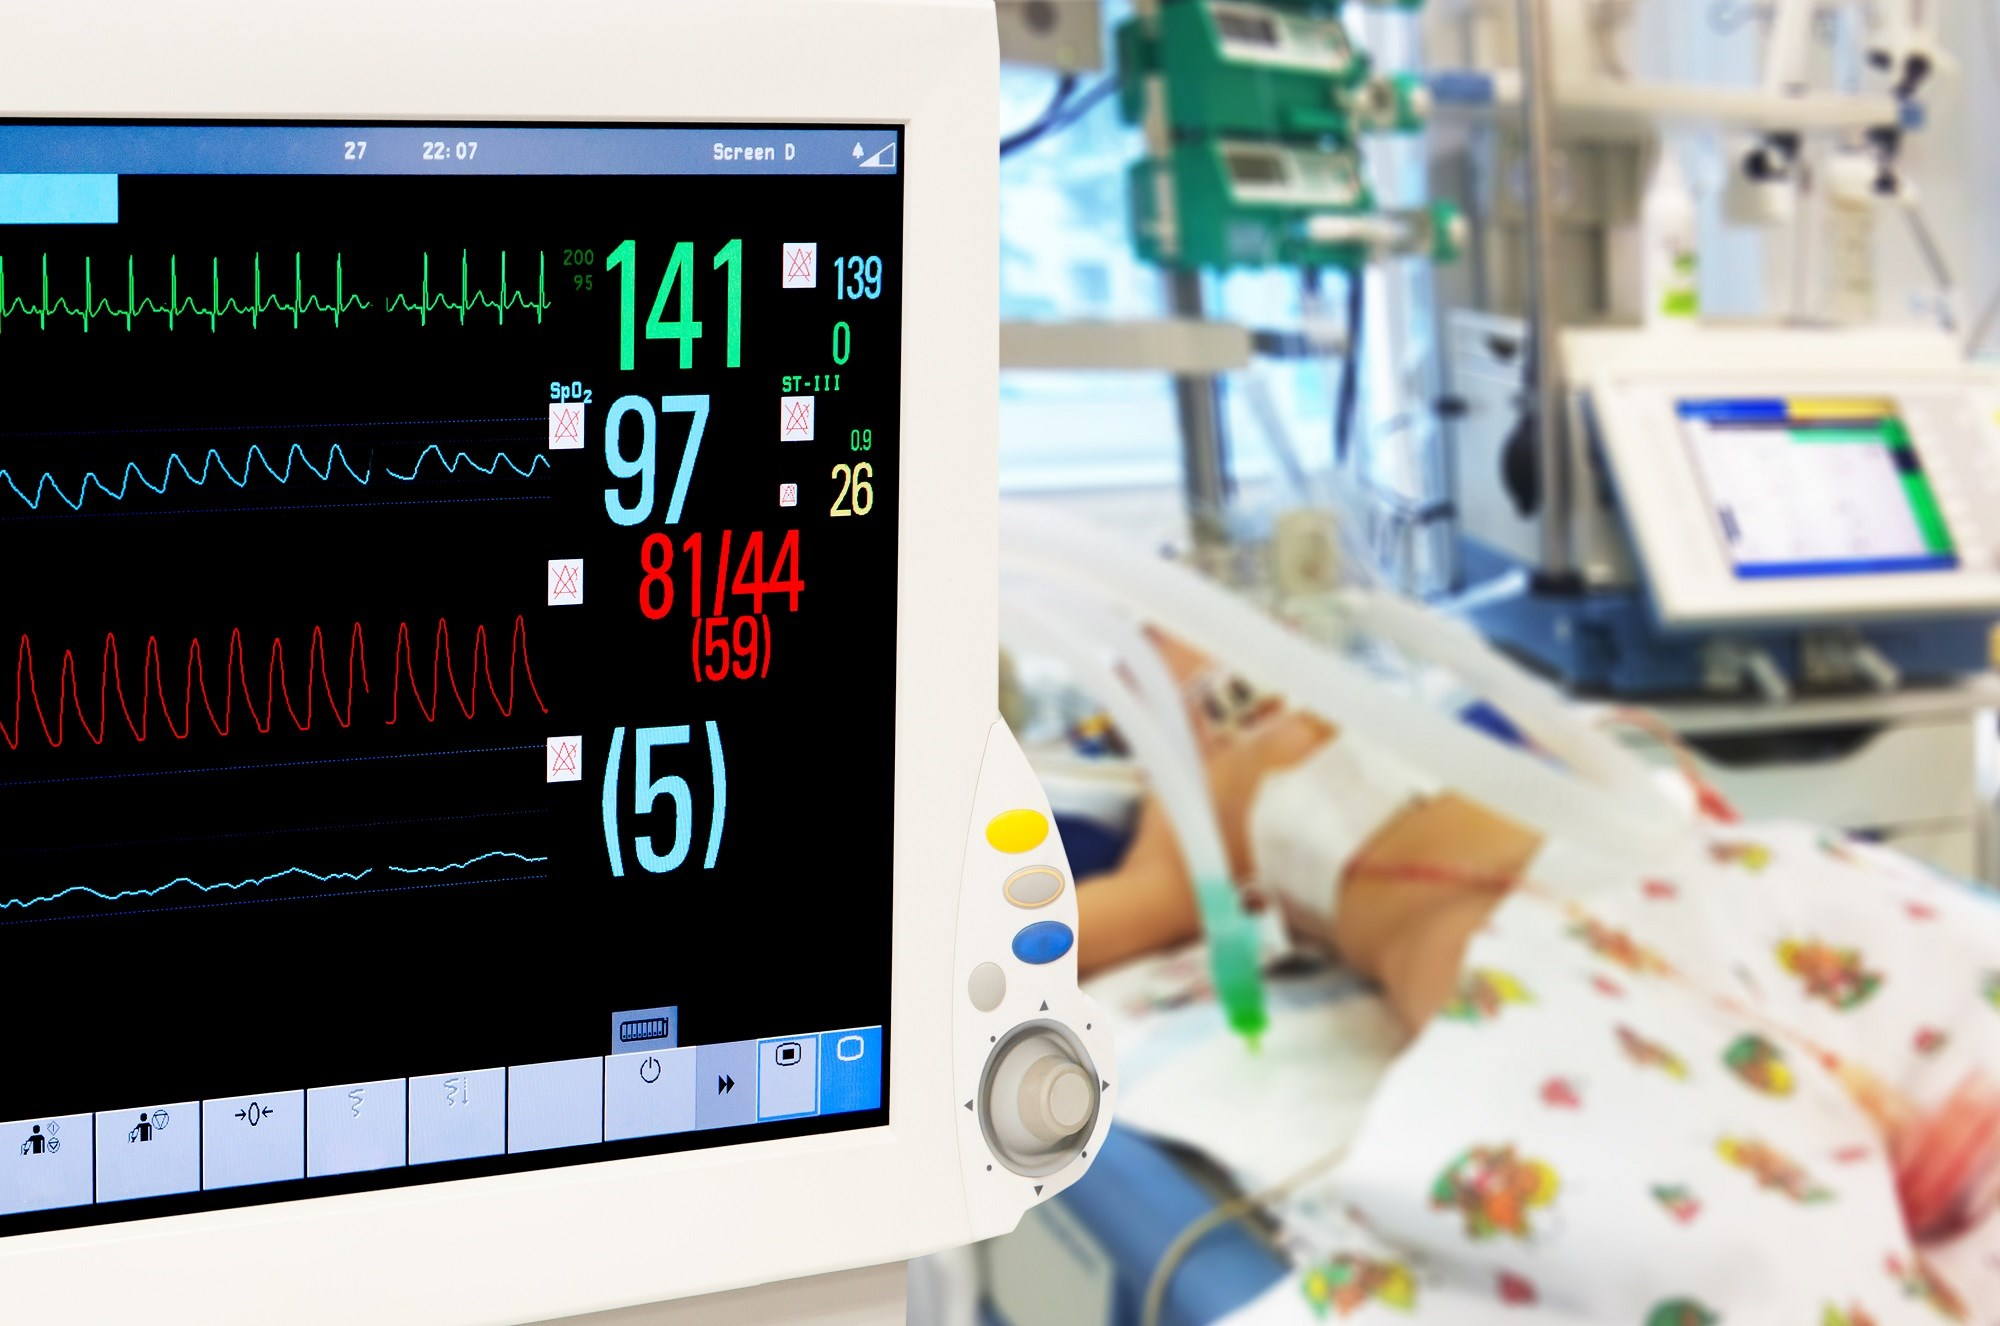 Response to Inhaled NO in Neonates With Persistent Pulmonary Hypertension Varies